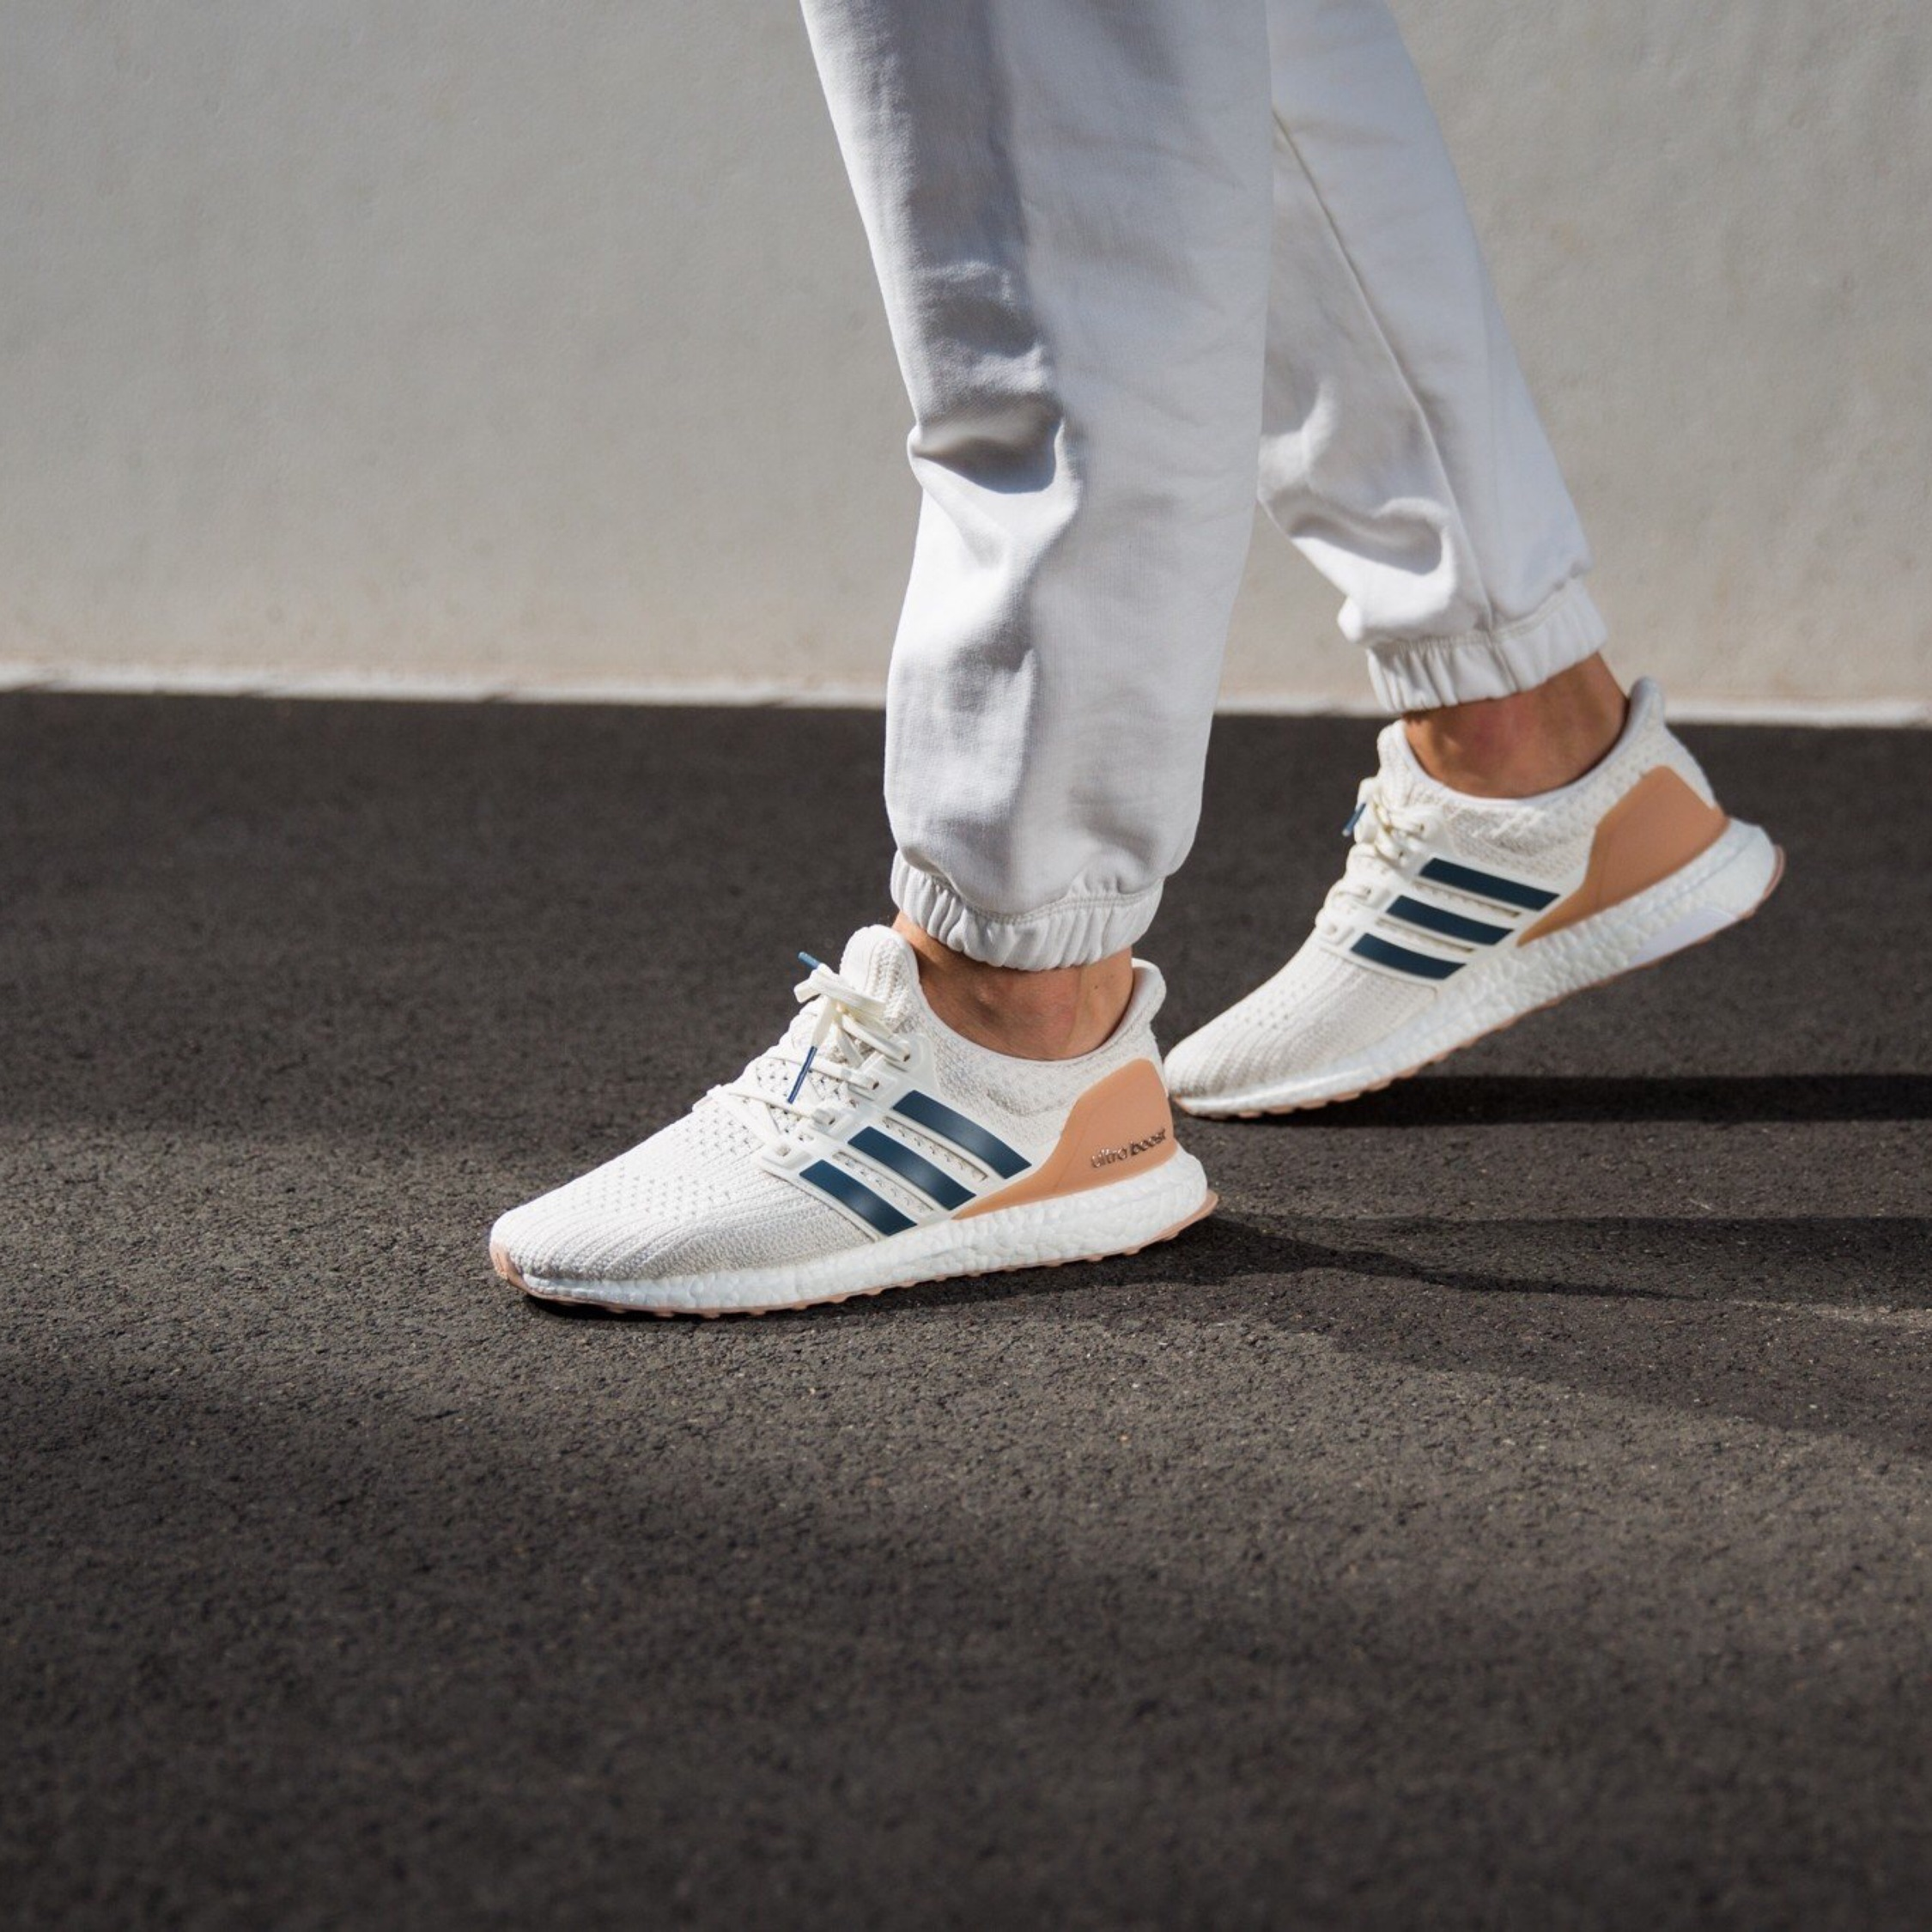 new collection sale retailer professional sale Adidas Ultraboost 4.0 Show Your Strips Cloud-White